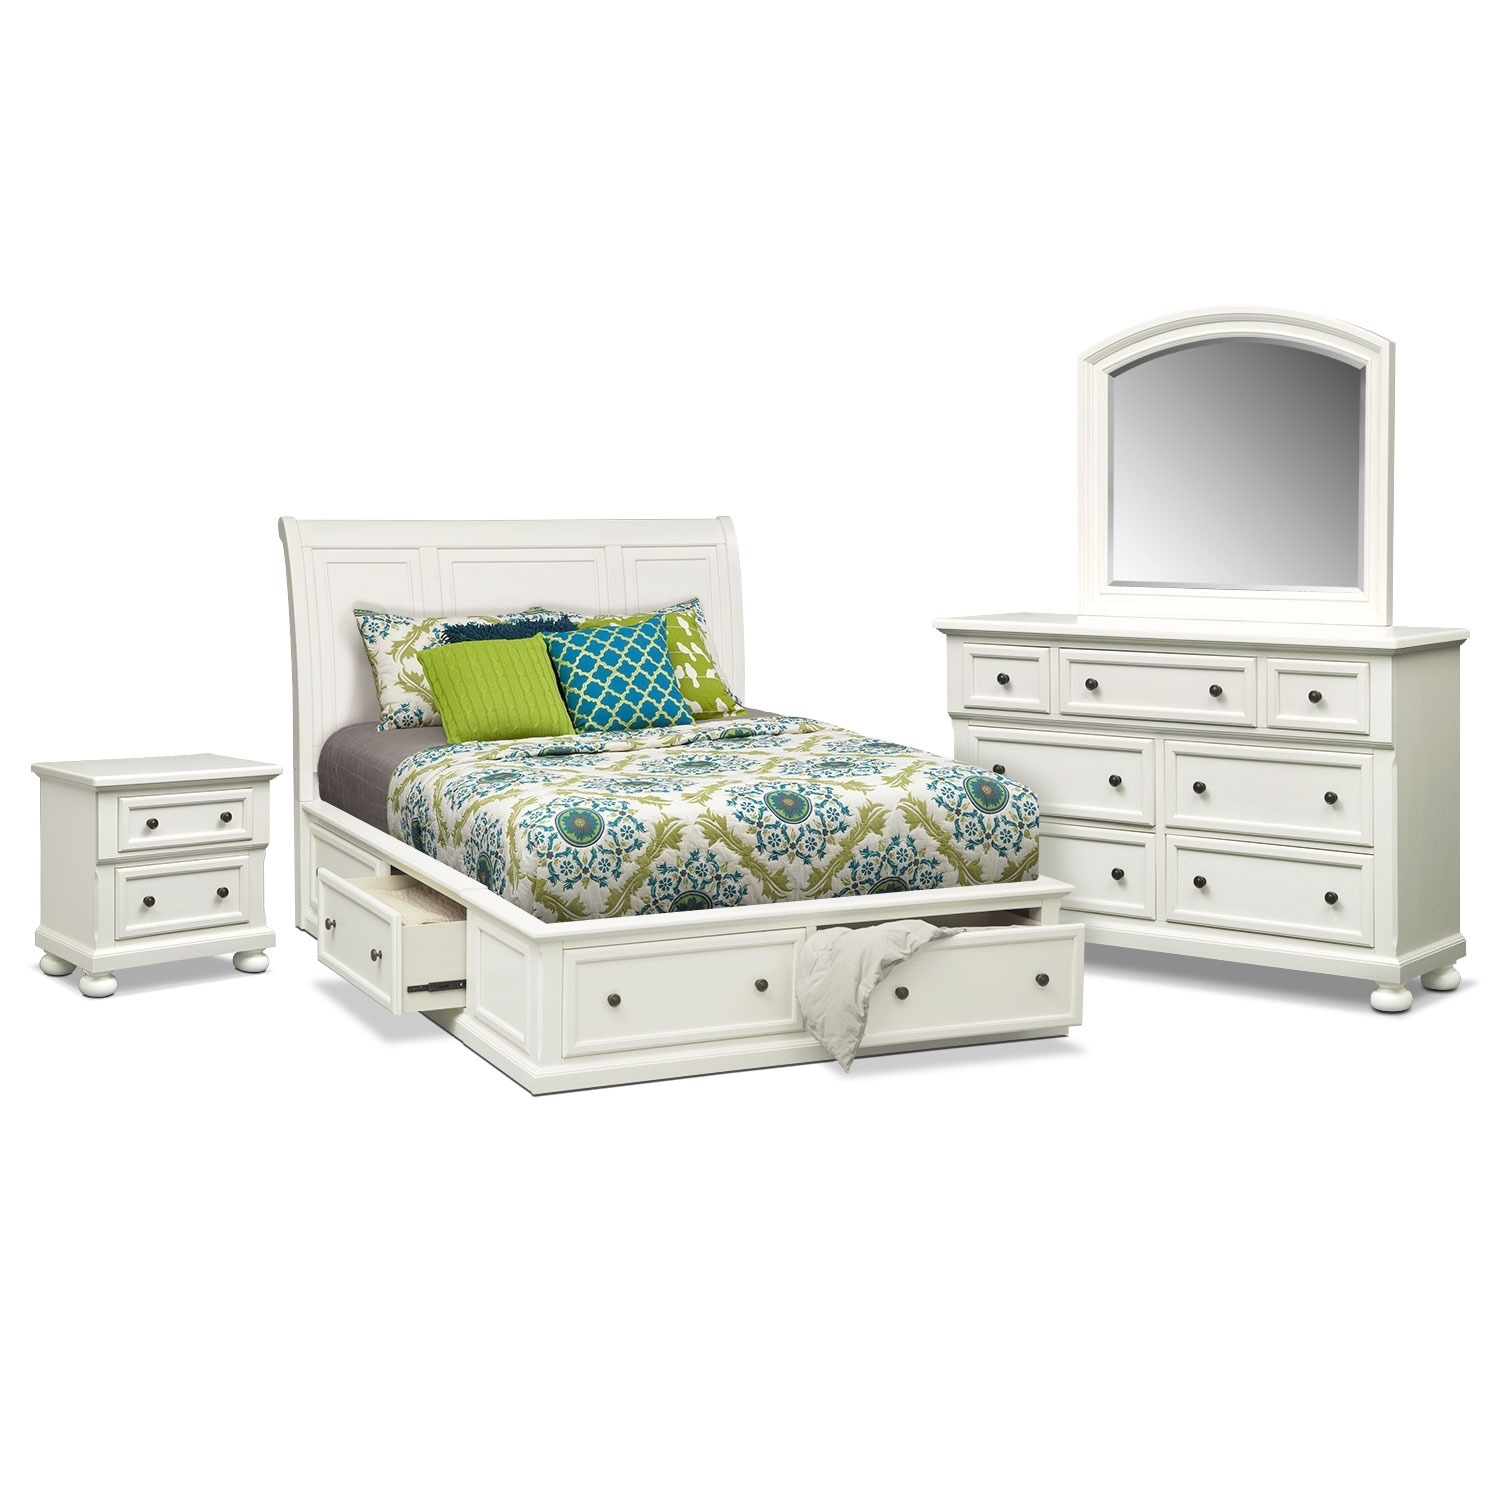 Hanover 6-Piece Queen Storage Bedroom Set - White